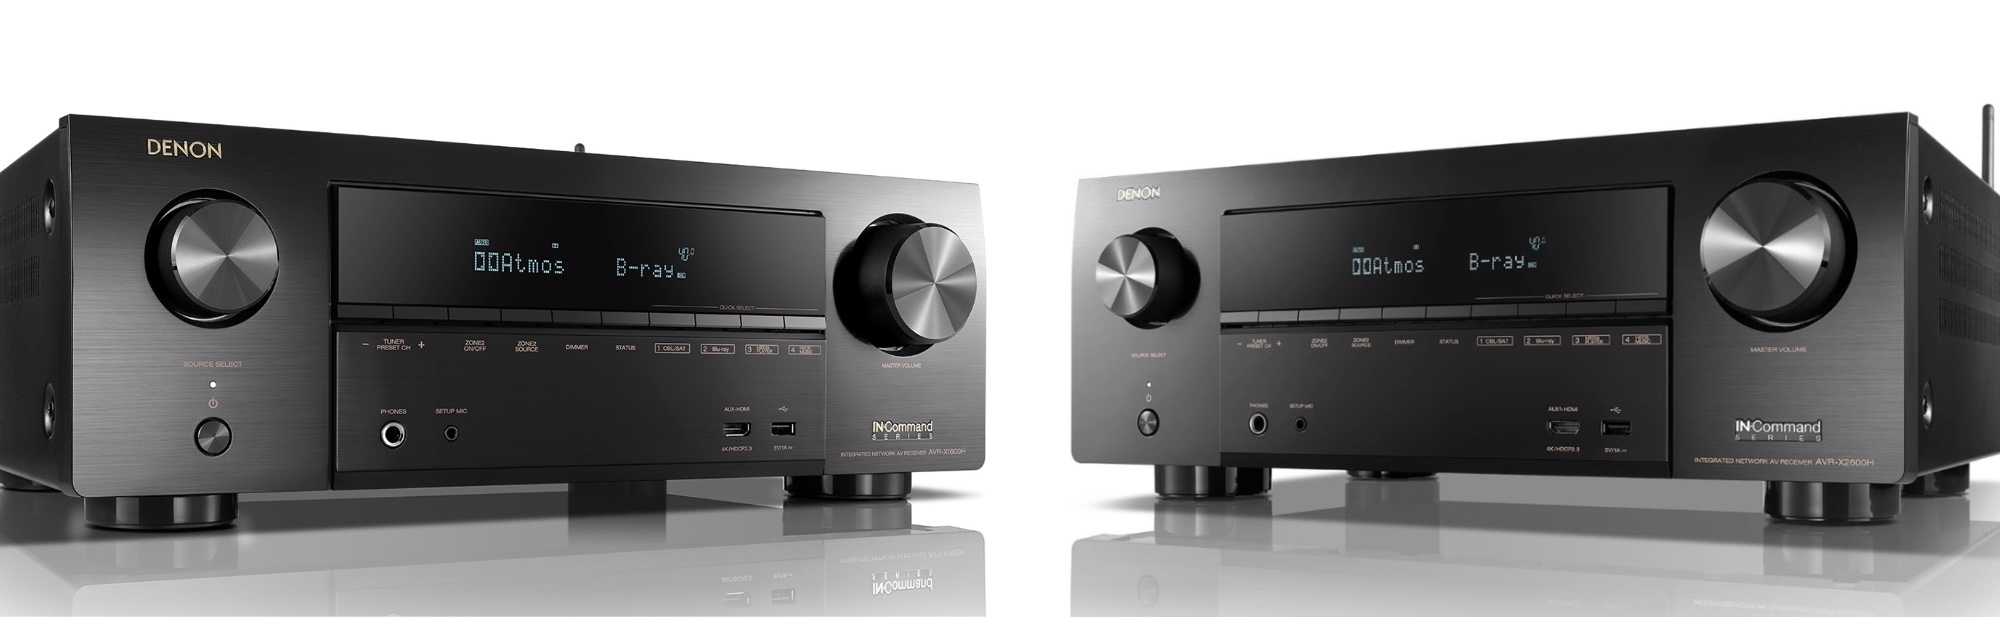 Denon X-Series AV Receivers